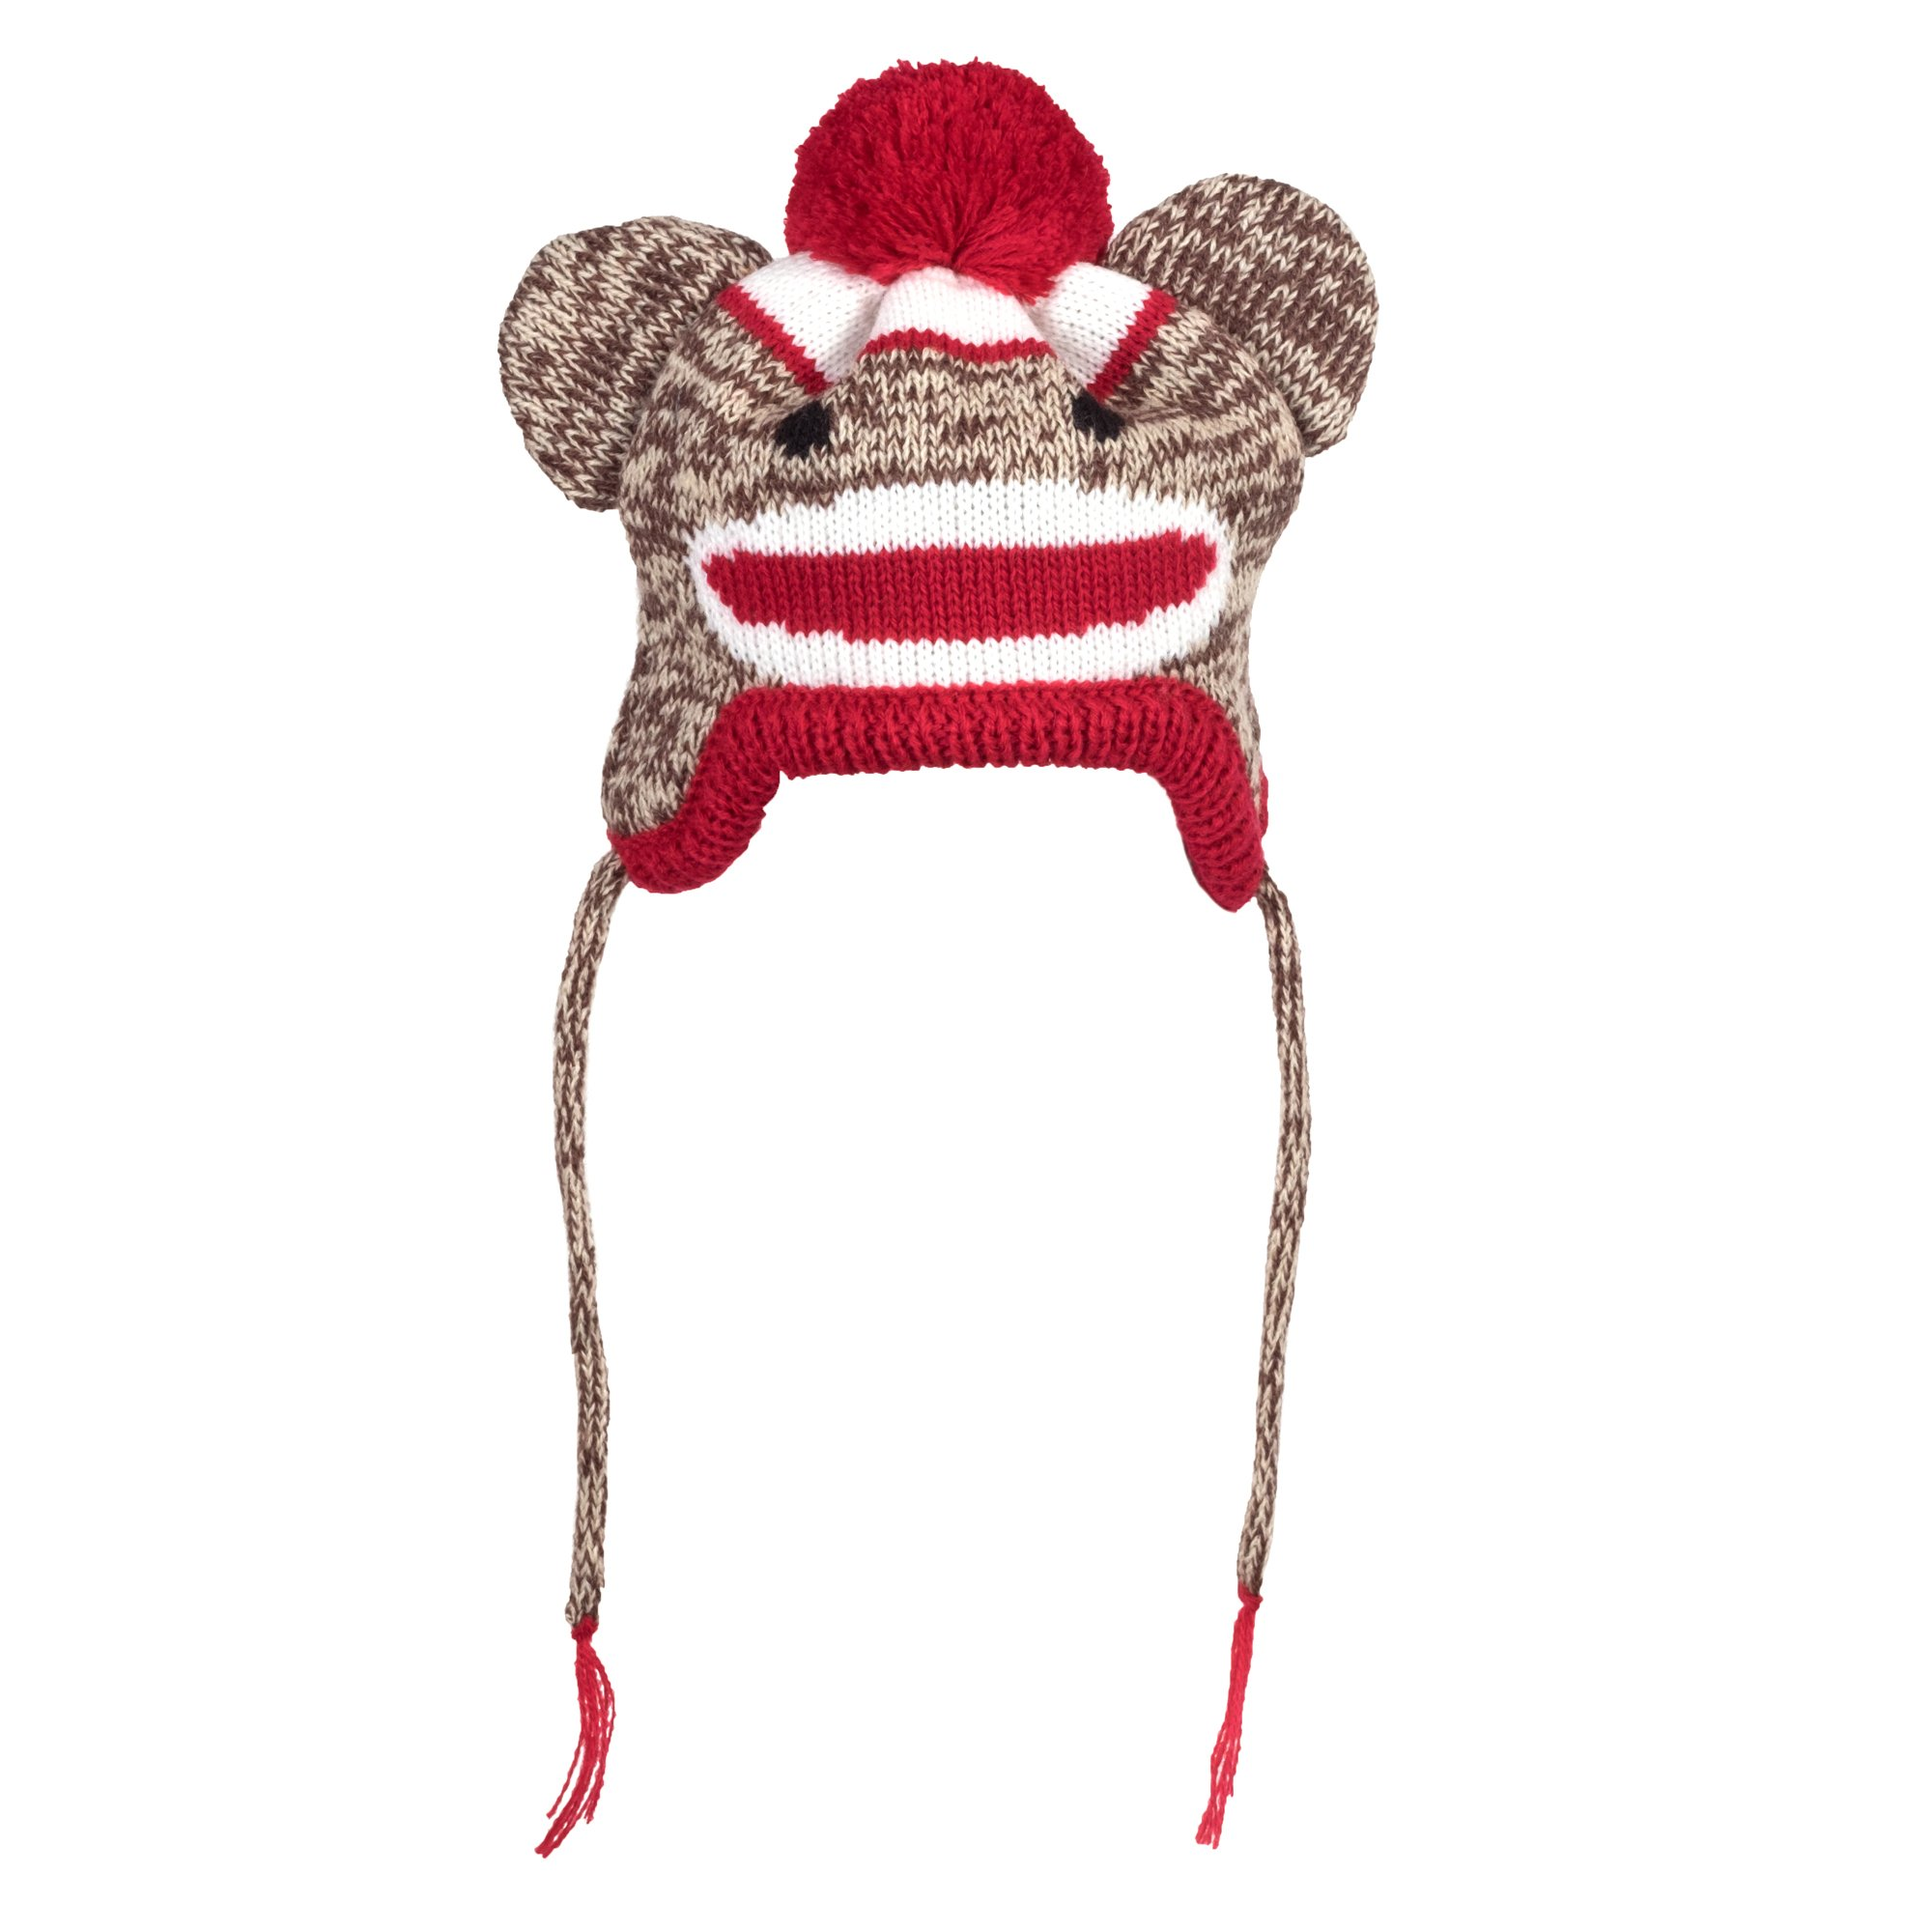 The Worthy Dog Sock Monkey Hat for Dogs, Large, Brown